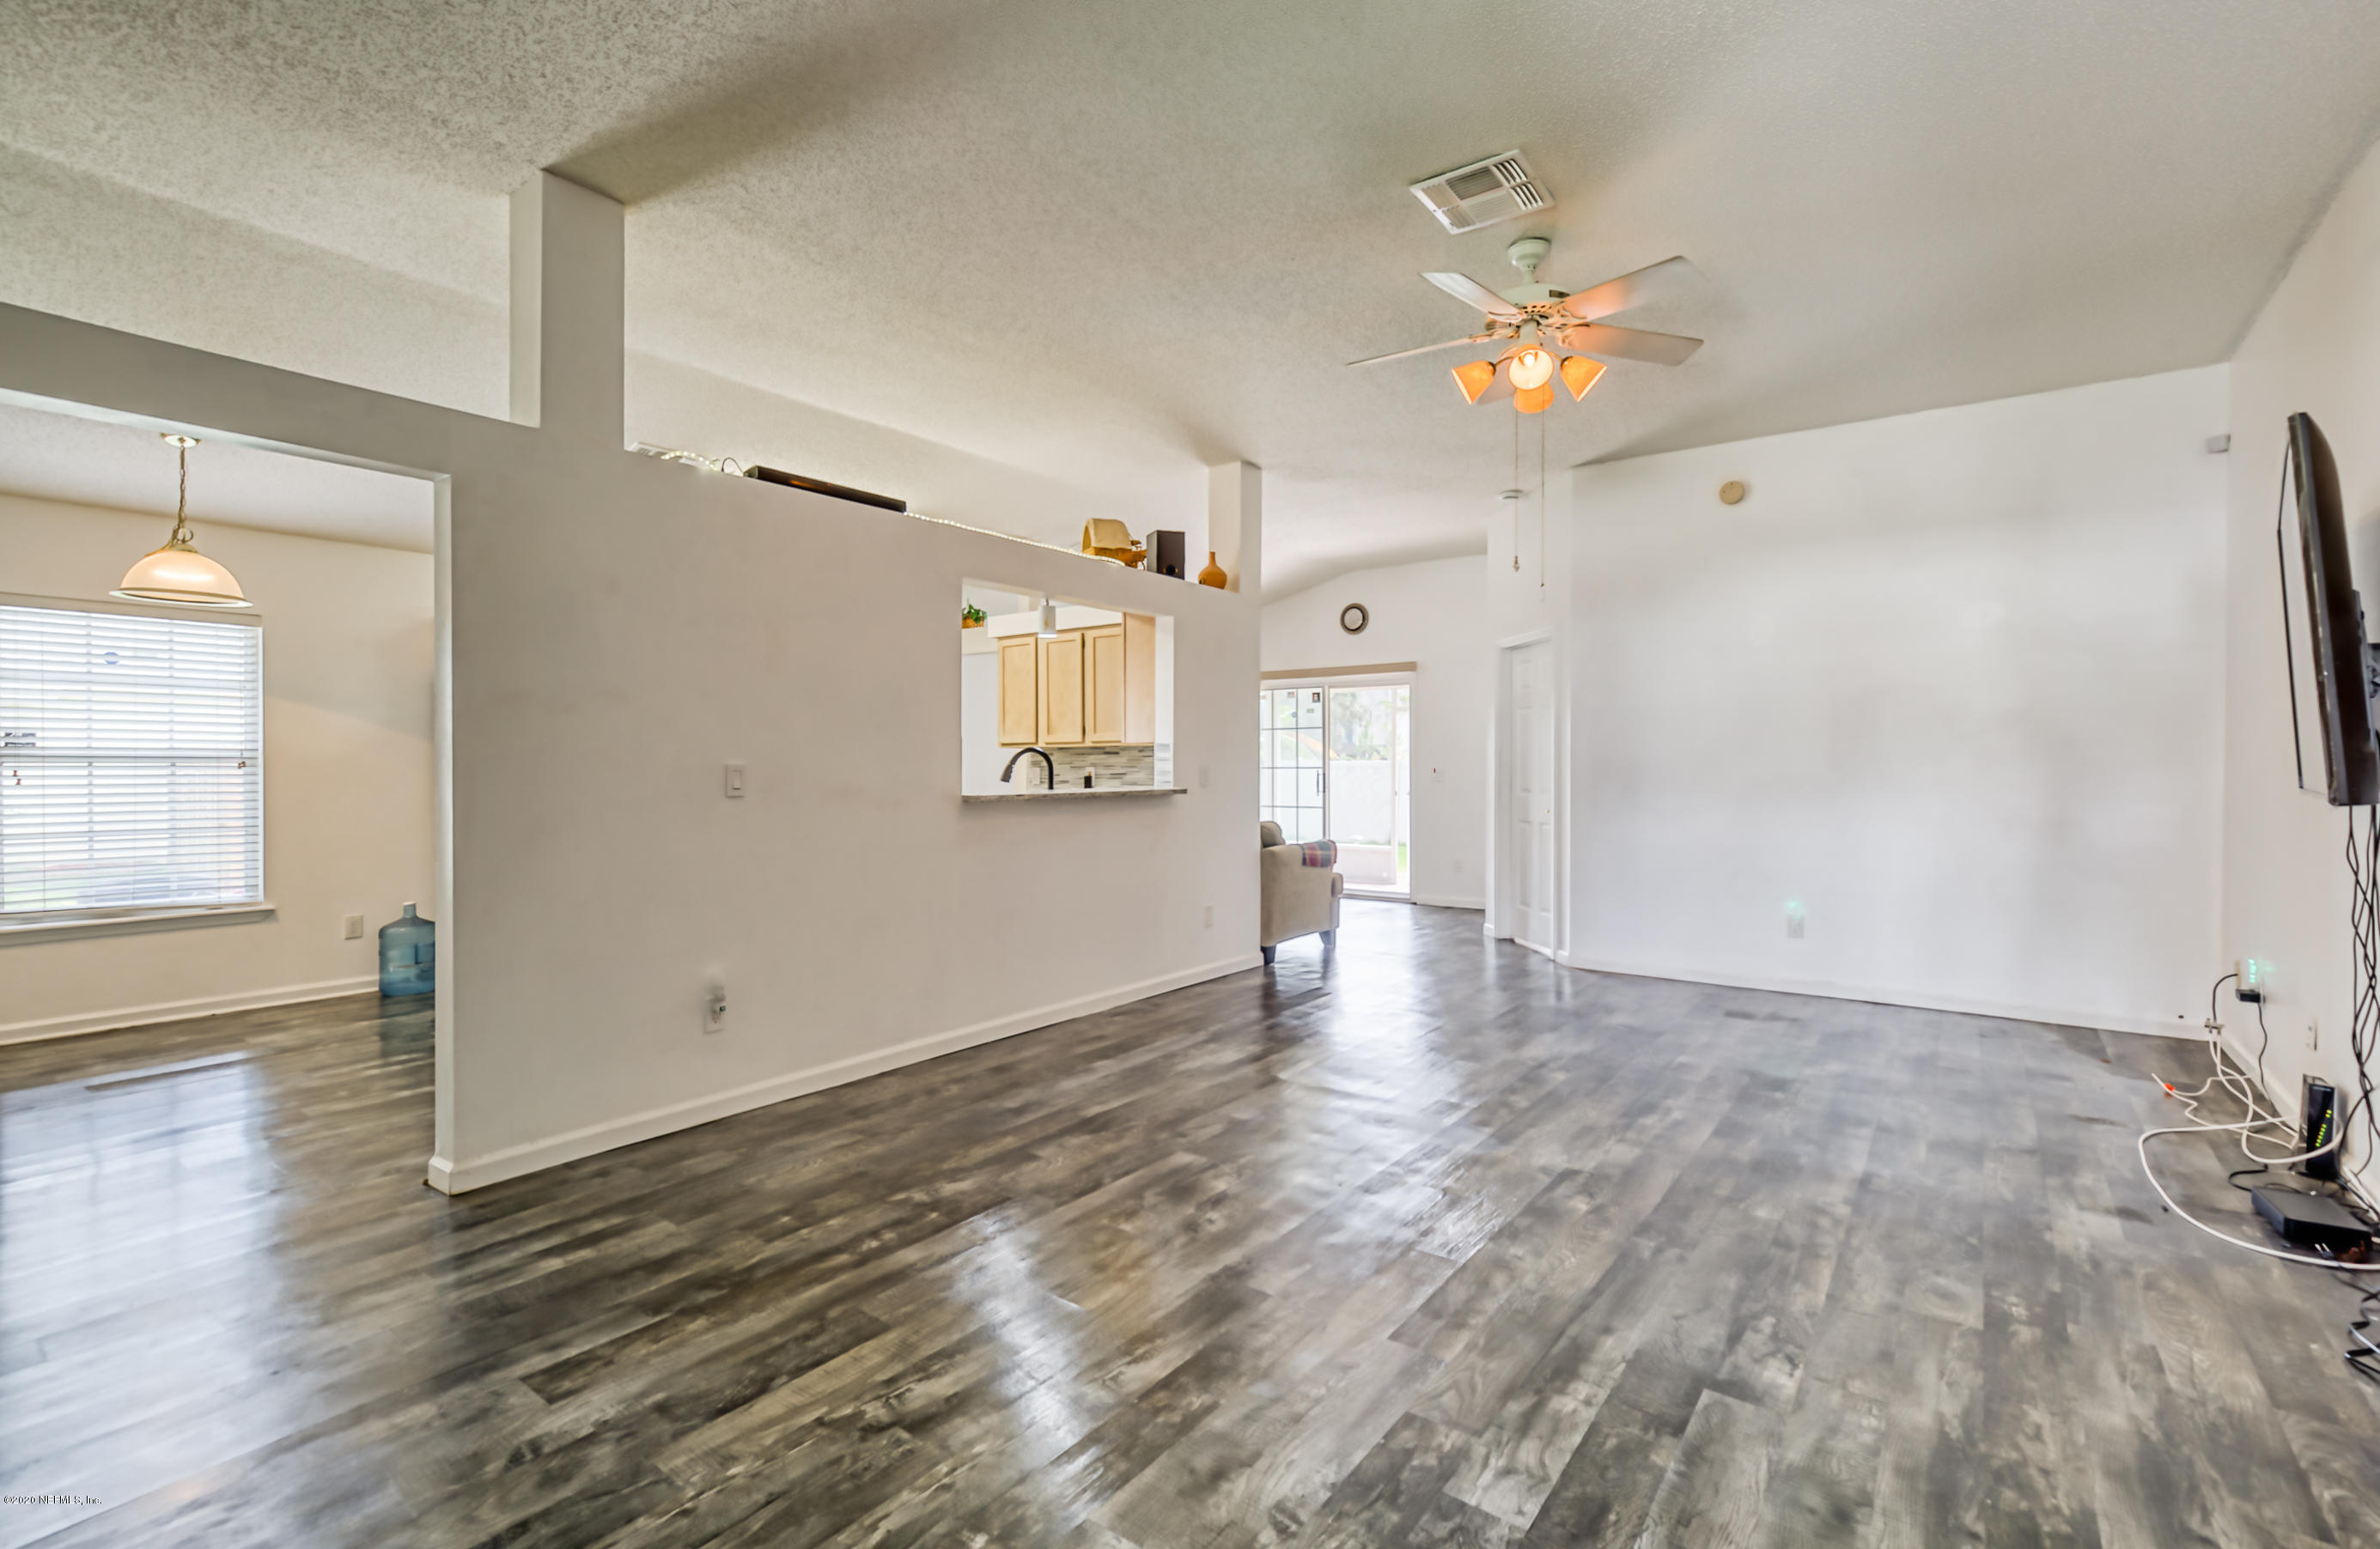 805 SOUTHERN BELLE, JACKSONVILLE, FLORIDA 32259, 3 Bedrooms Bedrooms, ,2 BathroomsBathrooms,Residential,For sale,SOUTHERN BELLE,1080473